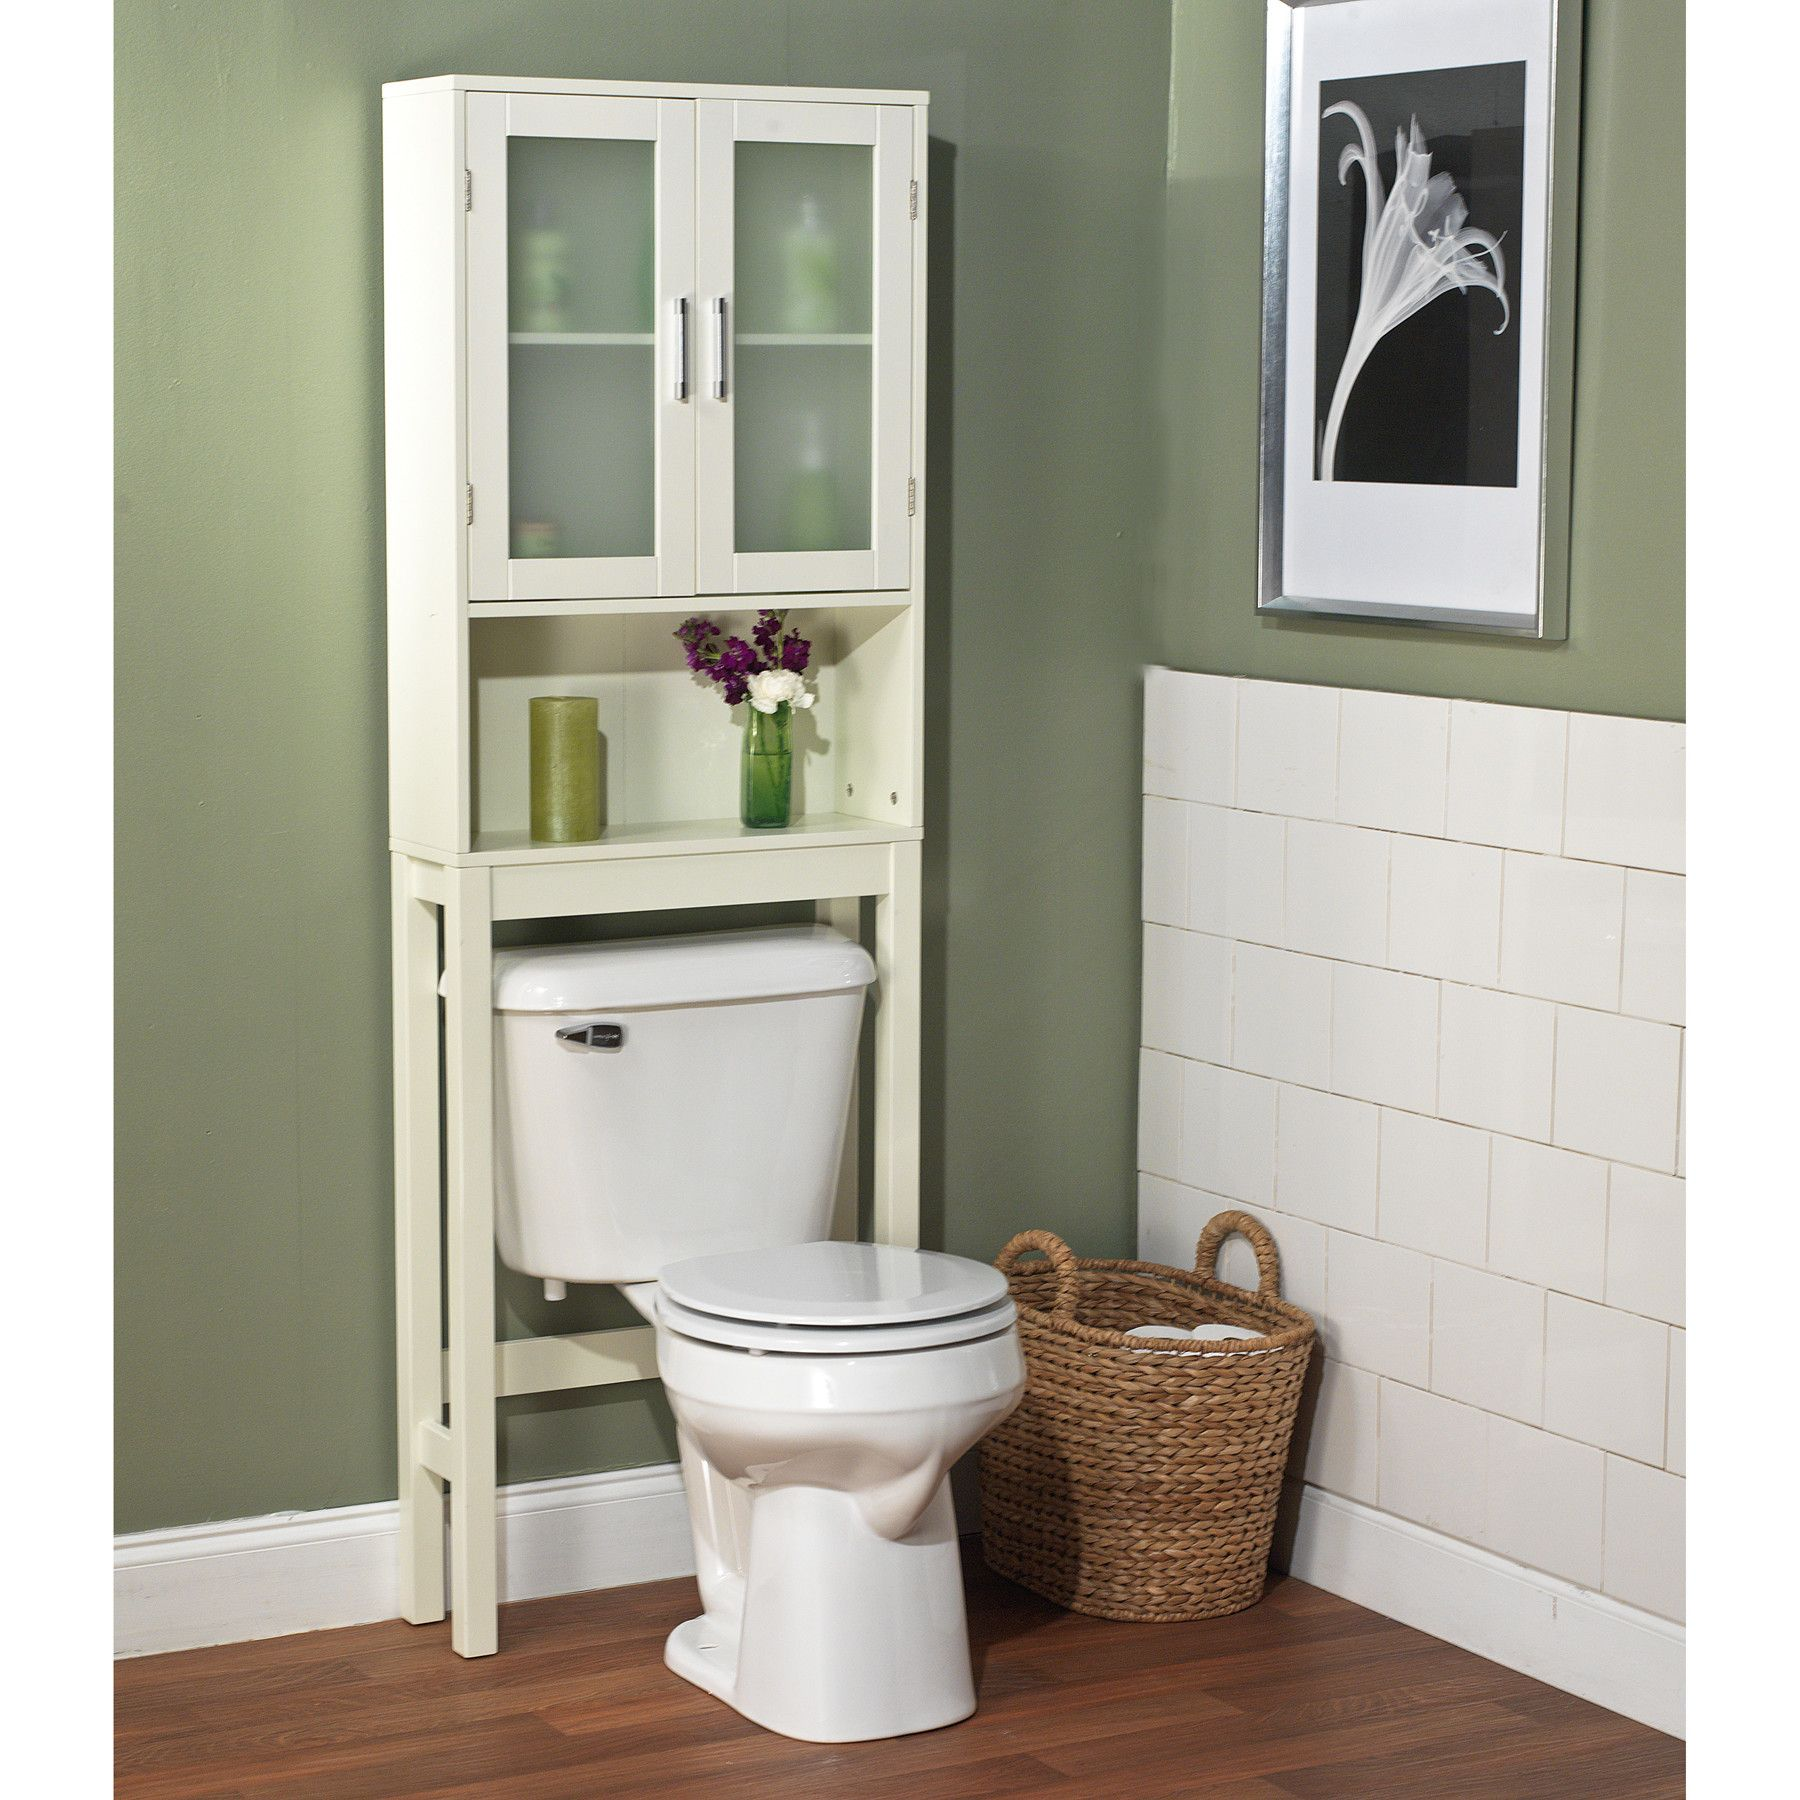 Tms 22 5 X 67 3 Over The Toilet Cabinet Bathroom Space Saver Over The Toilet Cabinet Toilet Storage